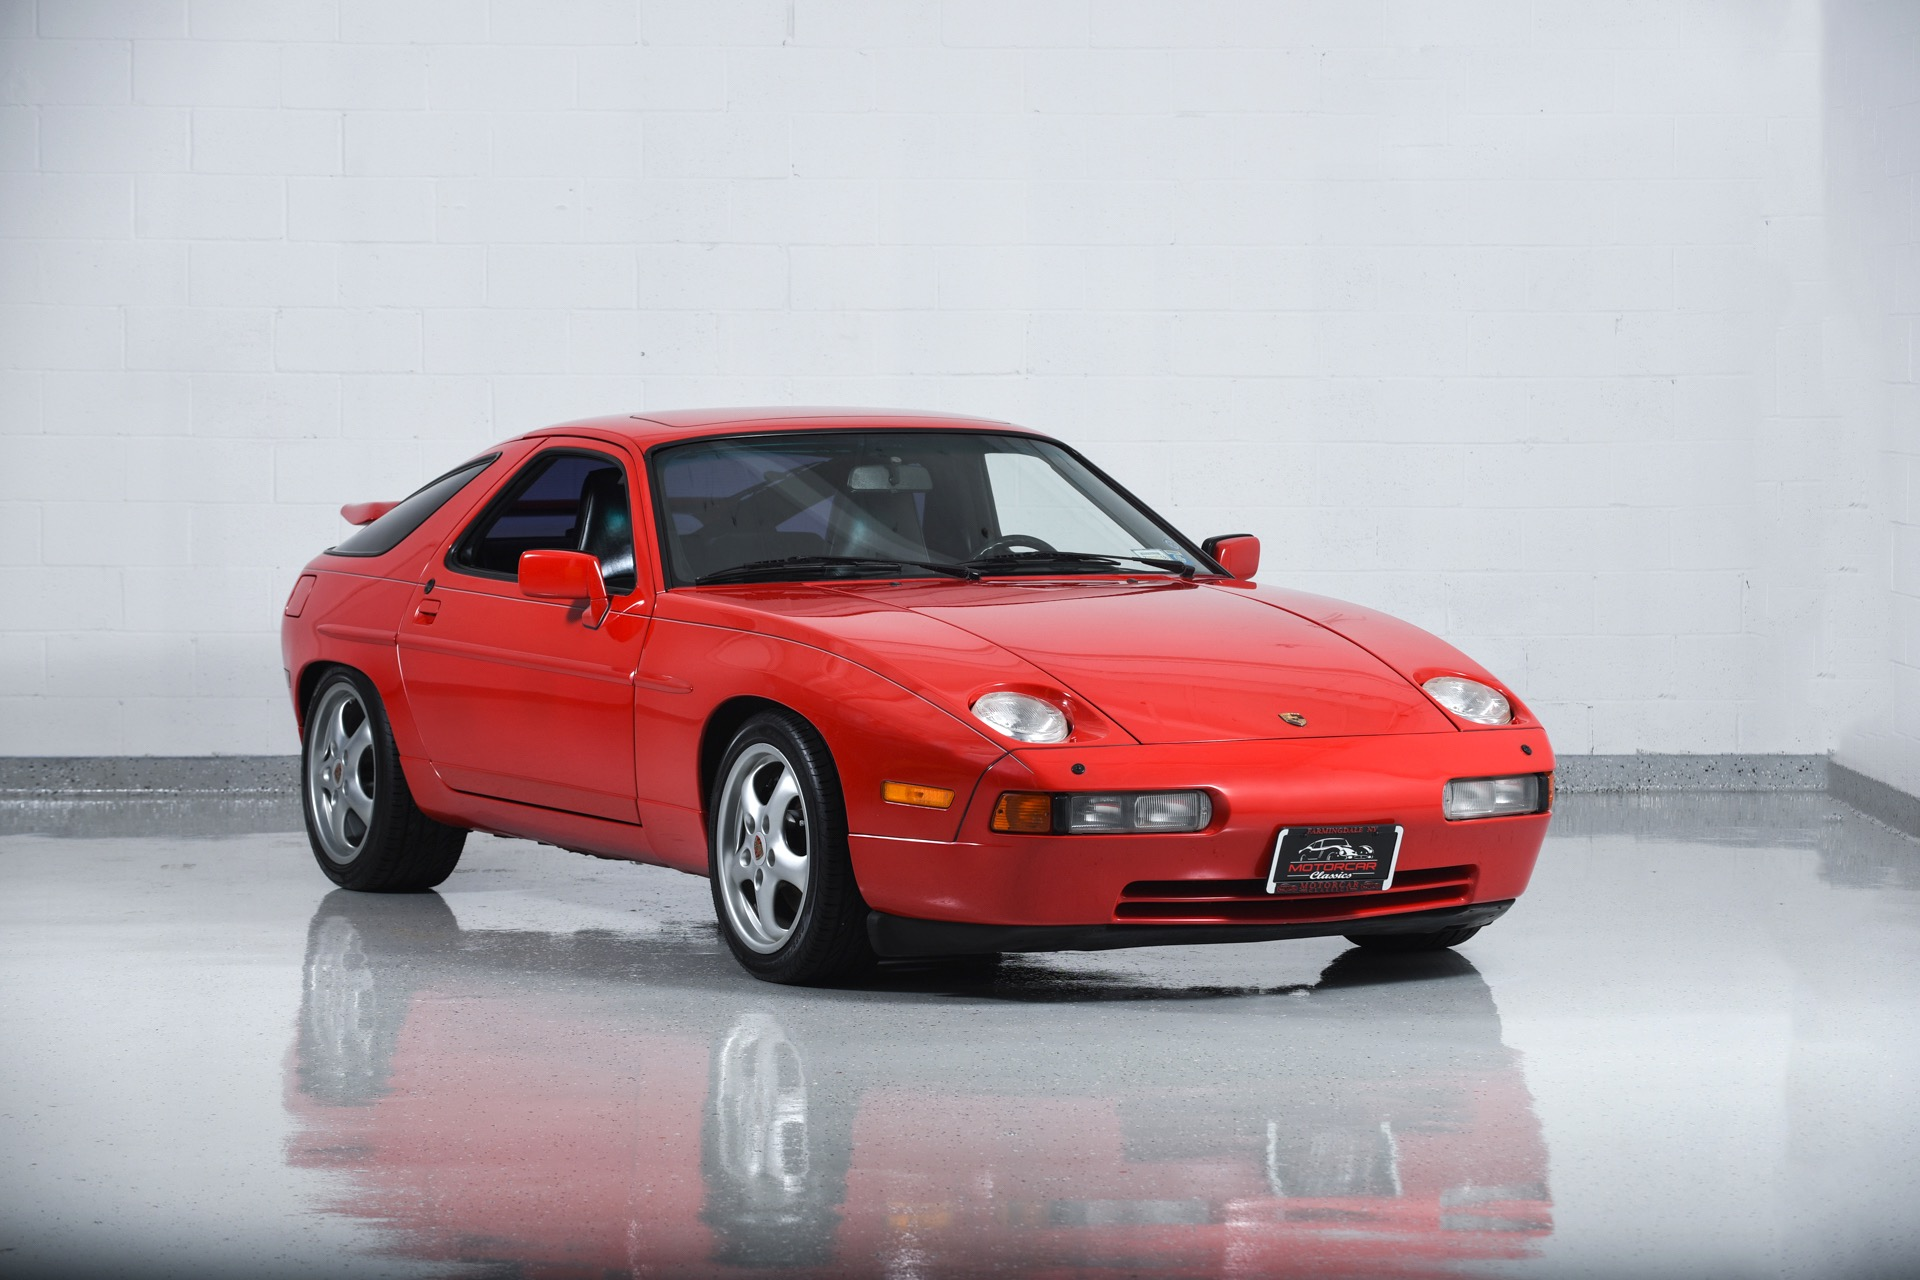 1988 porsche 928 s4 motorcar classics exotic and. Black Bedroom Furniture Sets. Home Design Ideas